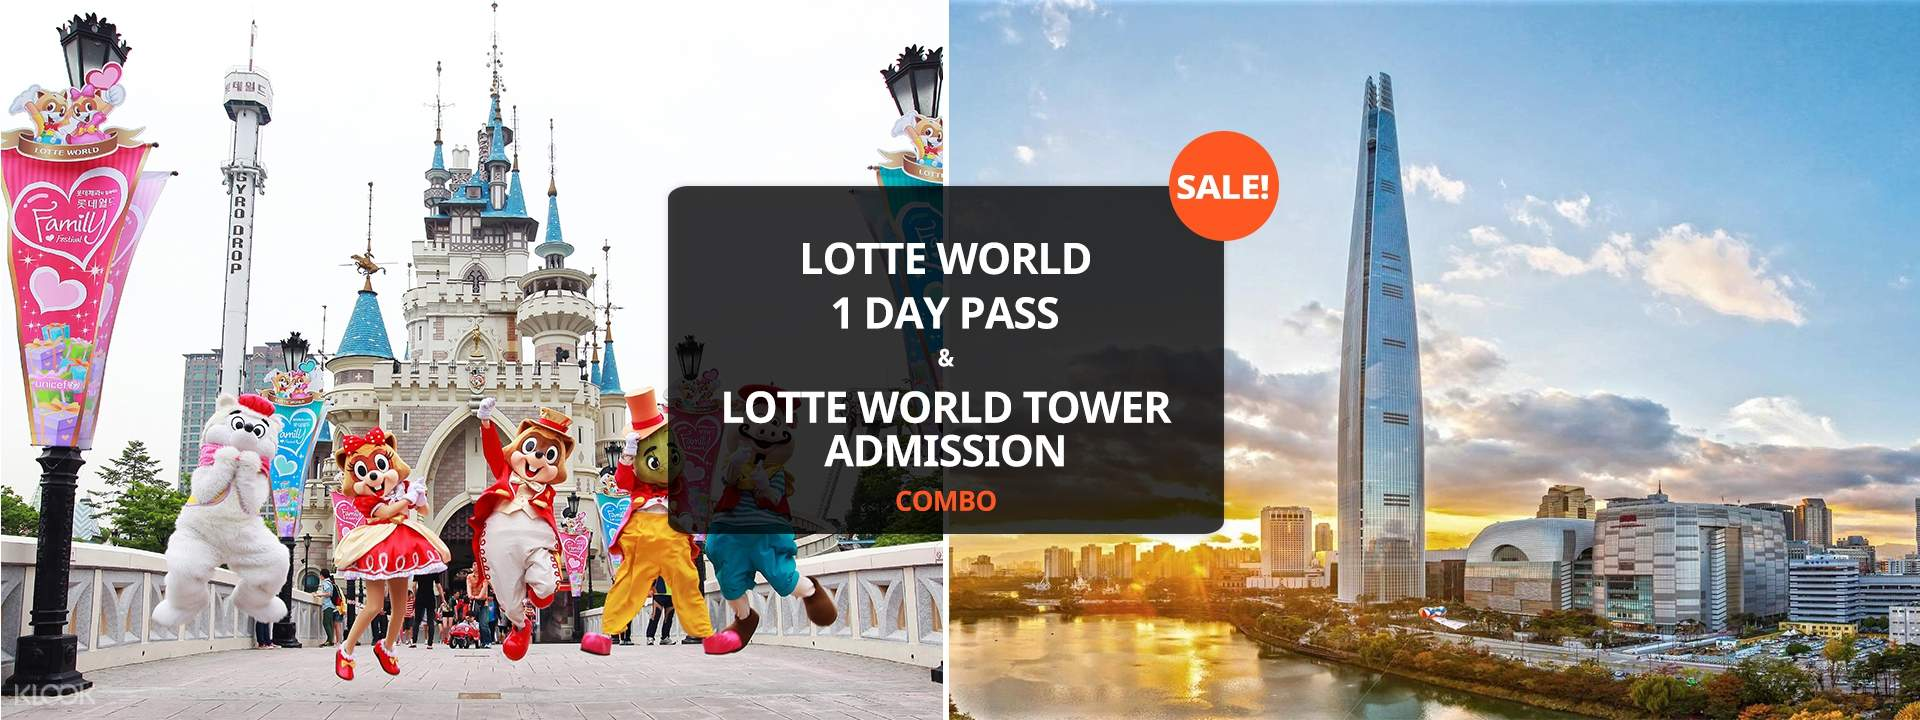 Lotte World 1 Day Pass and Lotte World Tower Admission